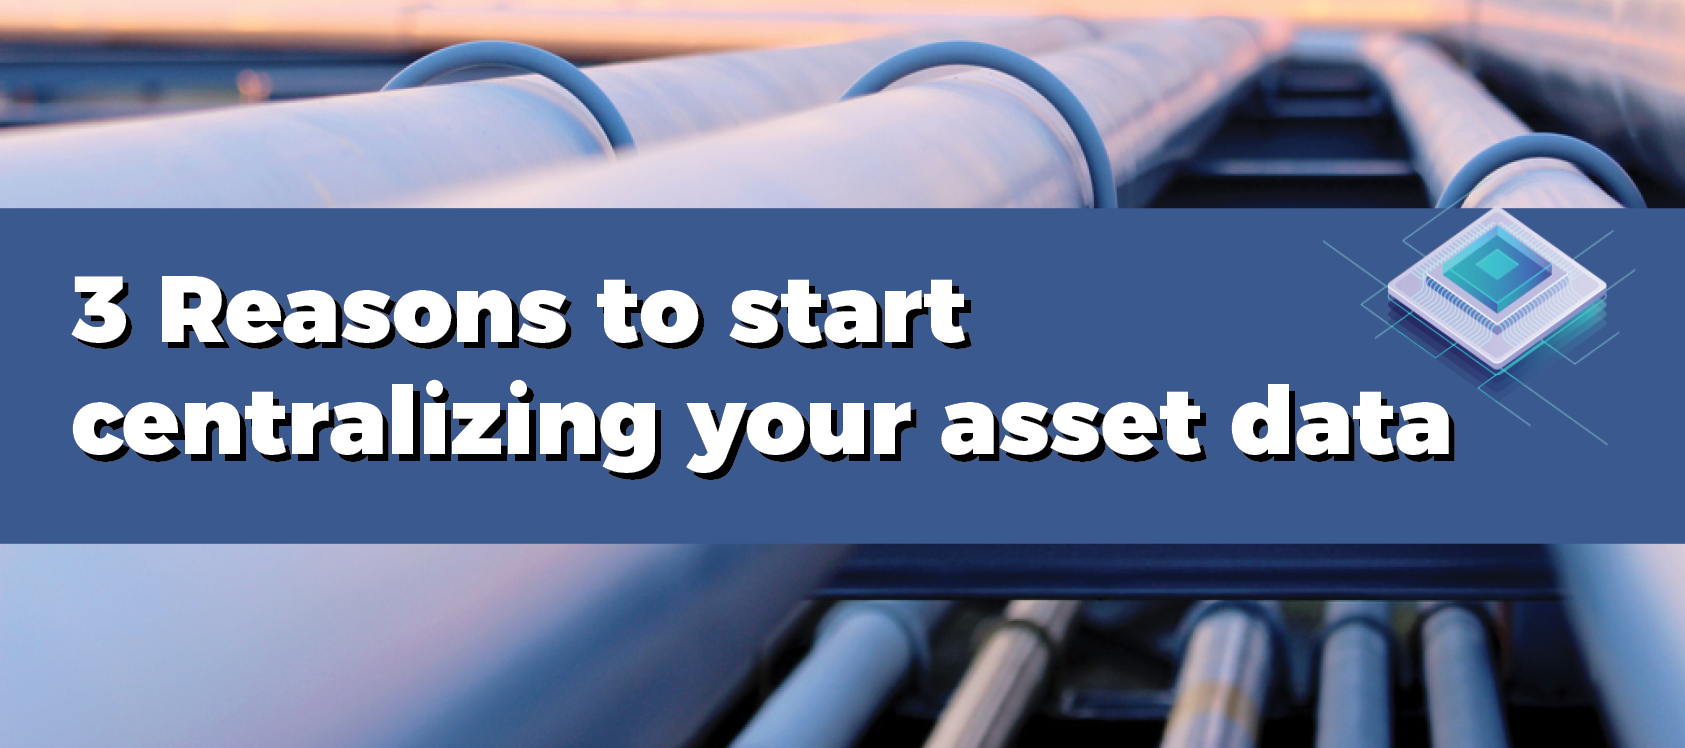 3 Reasons to start centralizing your asset data